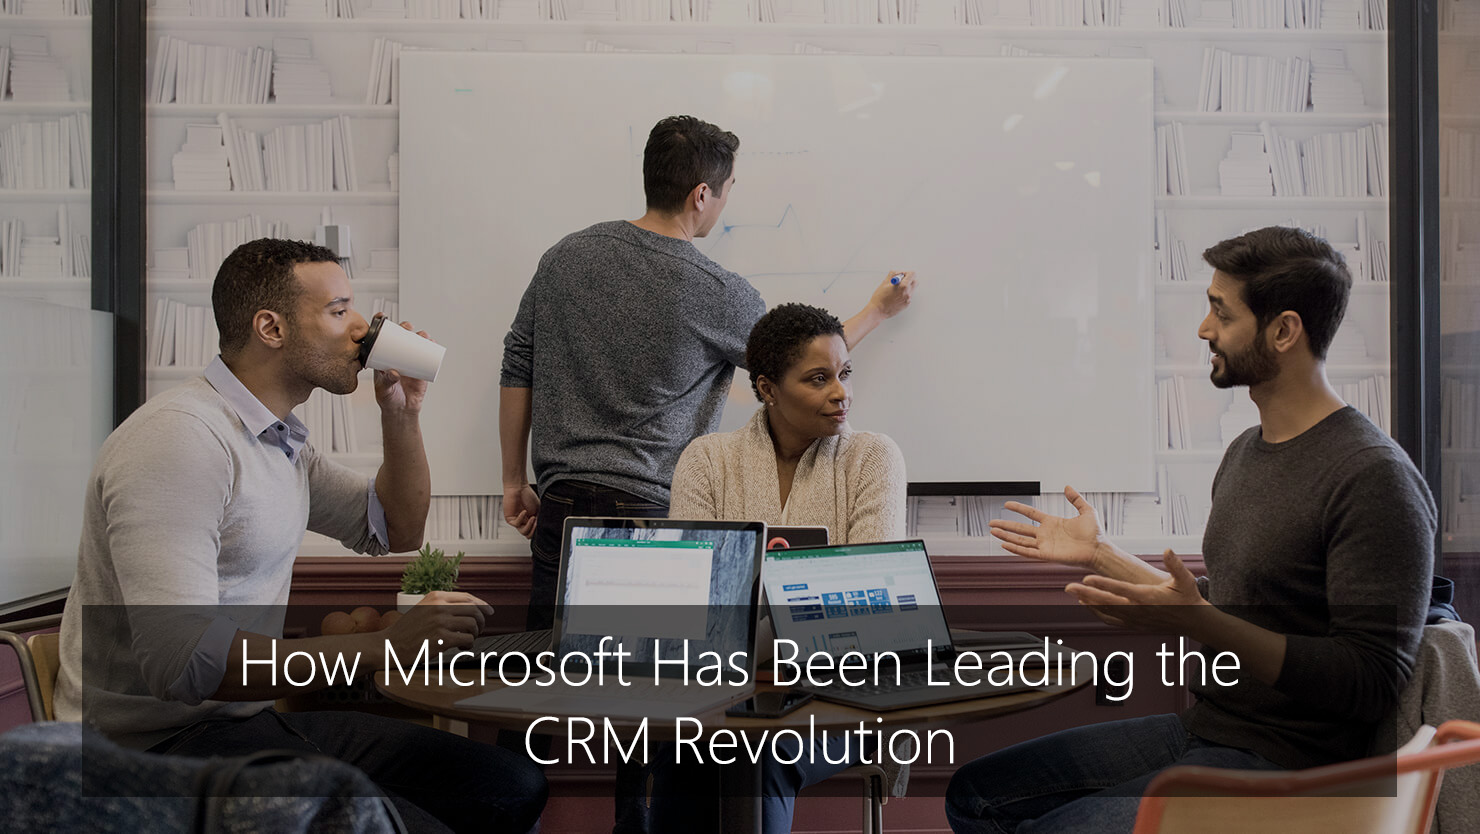 TMC-blog-how-microsoft-has-been-leading-the-crm-revolution